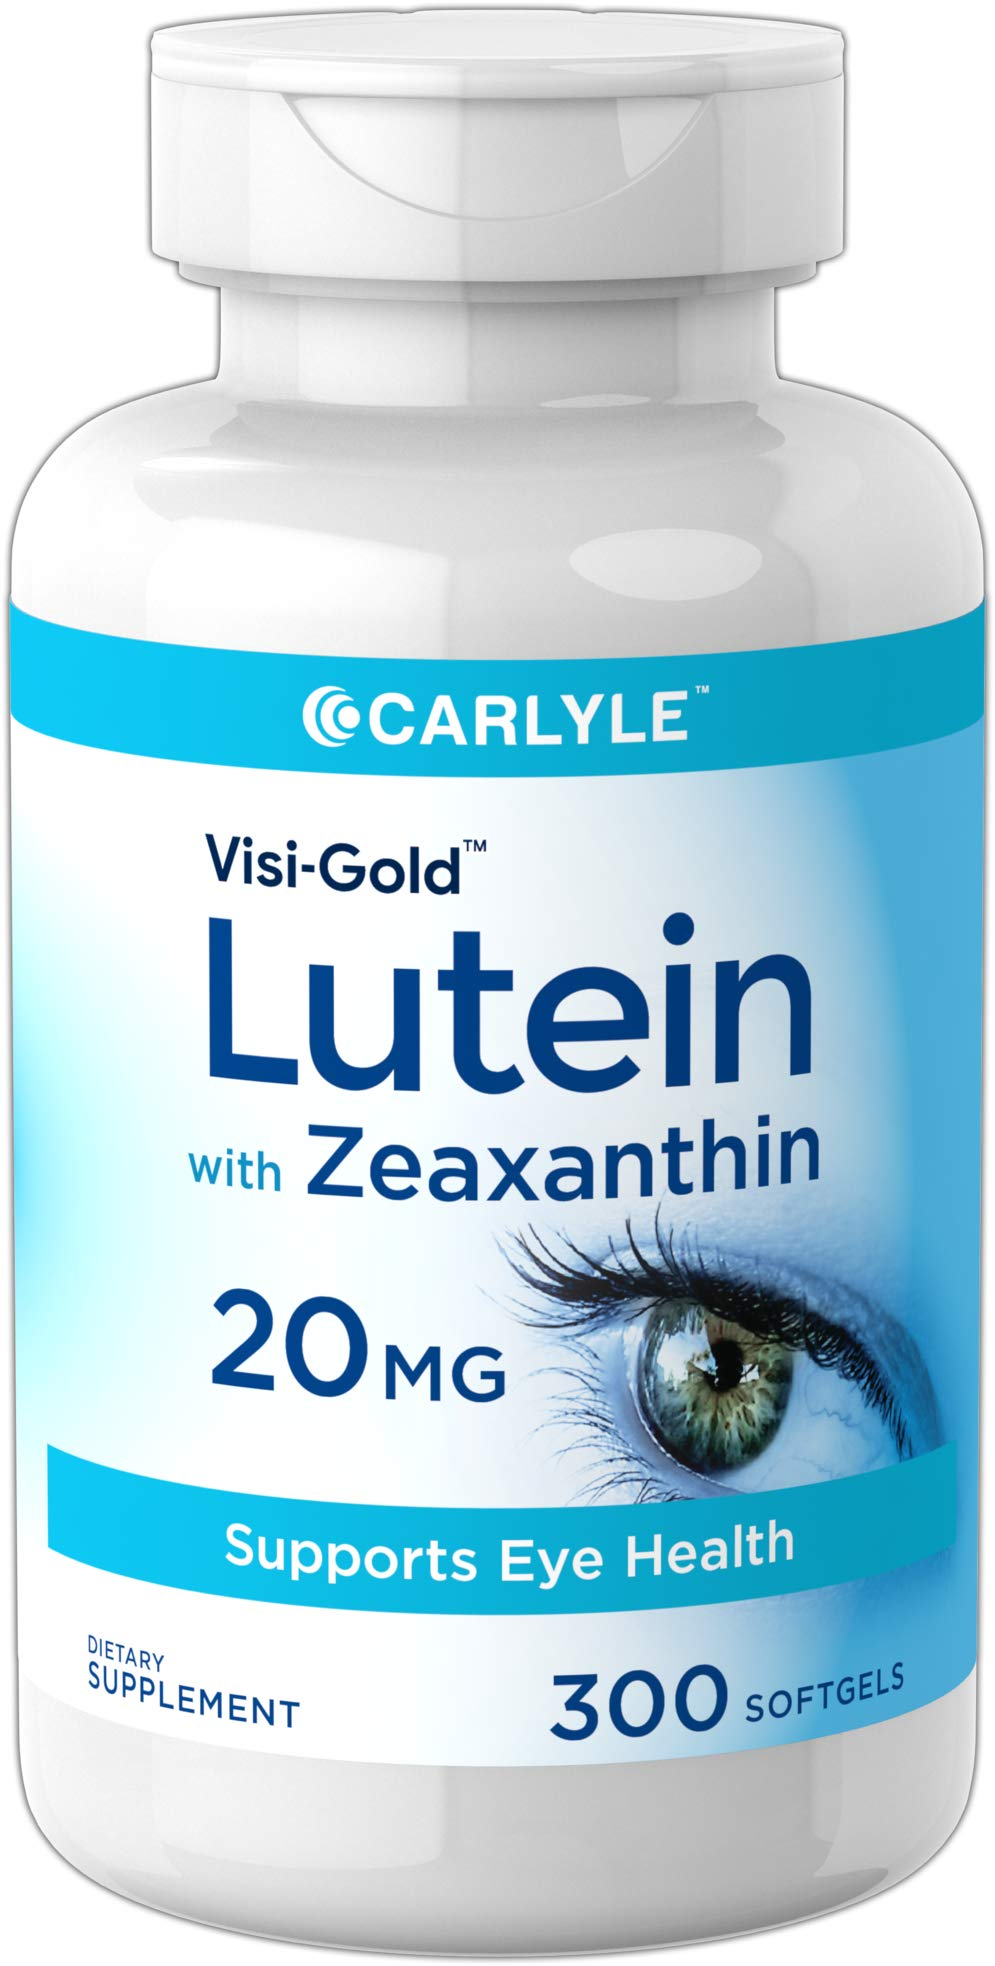 Carlyle Lutein 20 mg with Zeaxanthin 300 Softgels | Huge Size | Non-GMO, Gluten Free Supplement